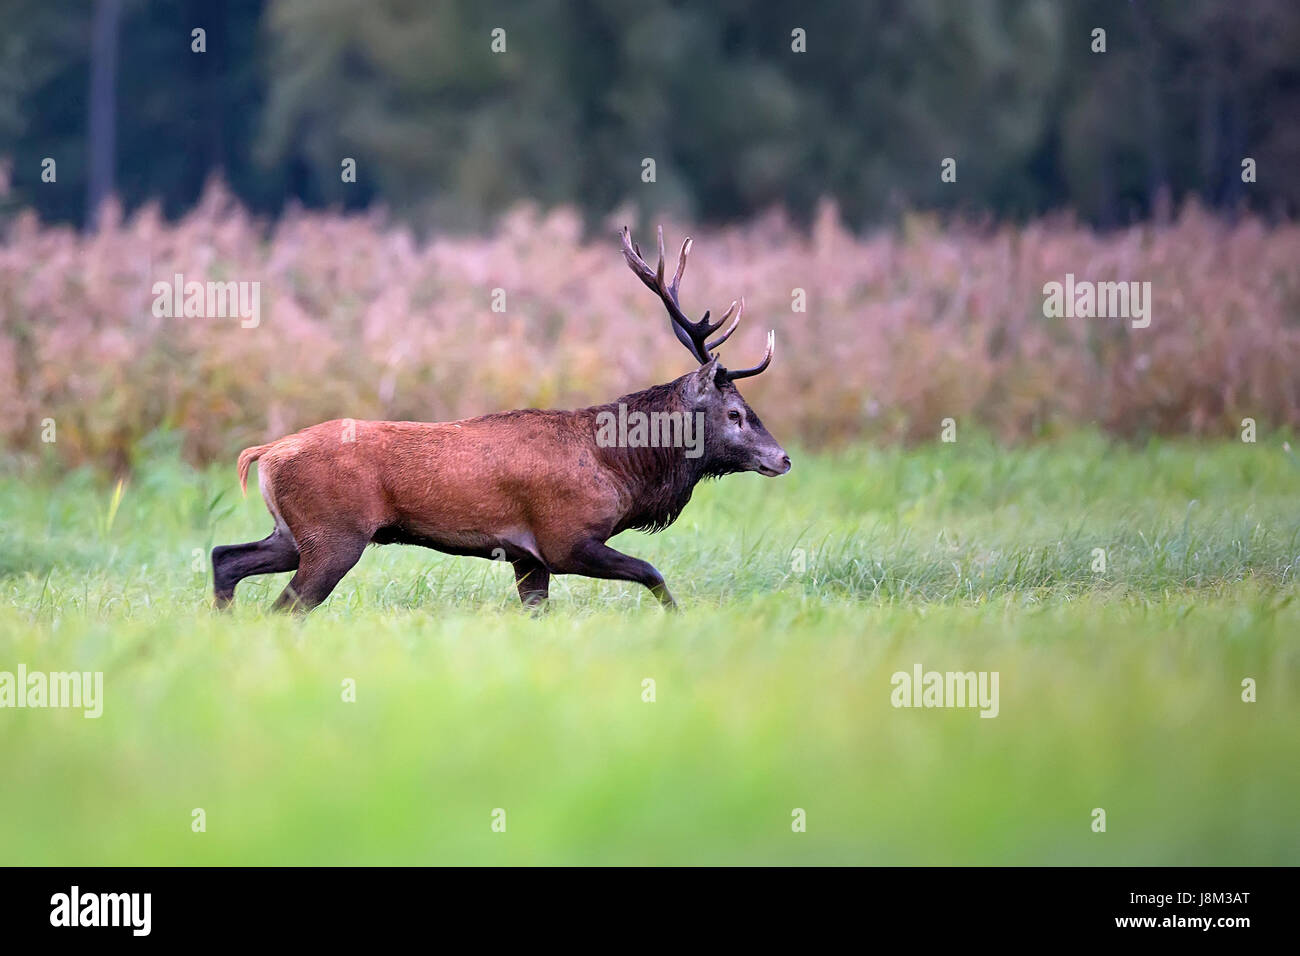 Red deer in a clearing in the wild - Stock Image